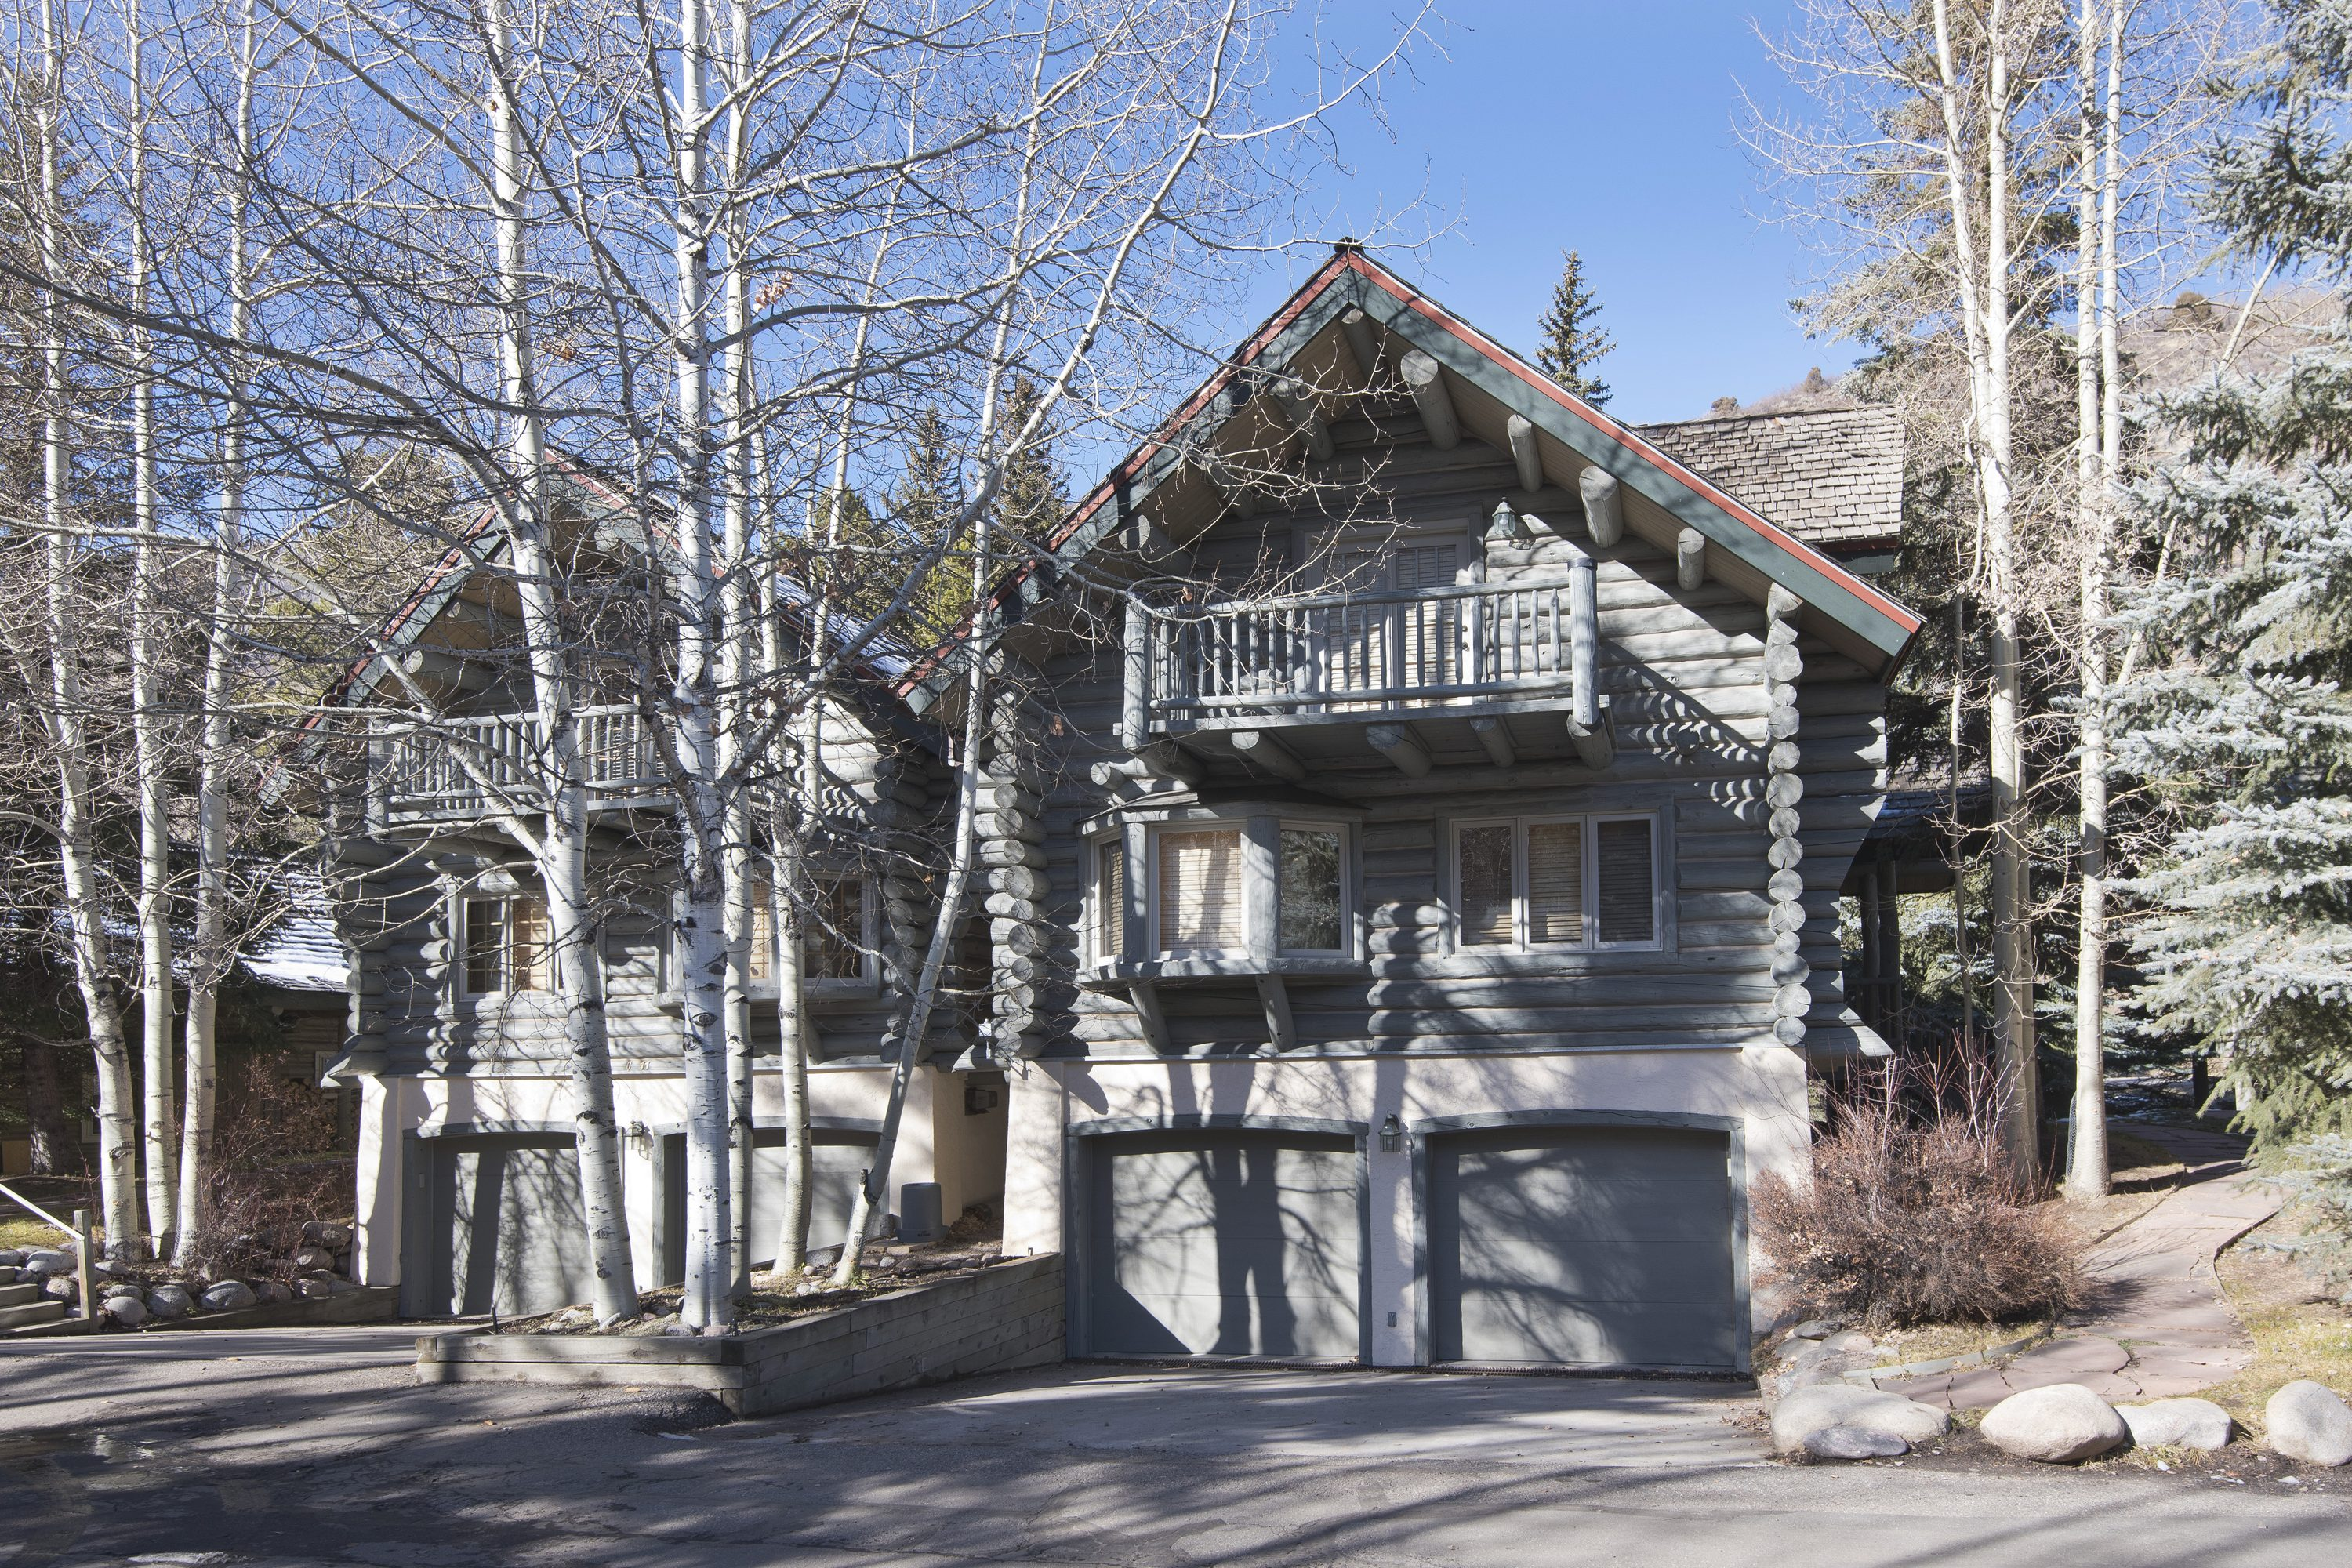 for rental rentals mesa colorado interior az mountain payson kamp in cabins flagstaff luxury kiwis cabin verde sale